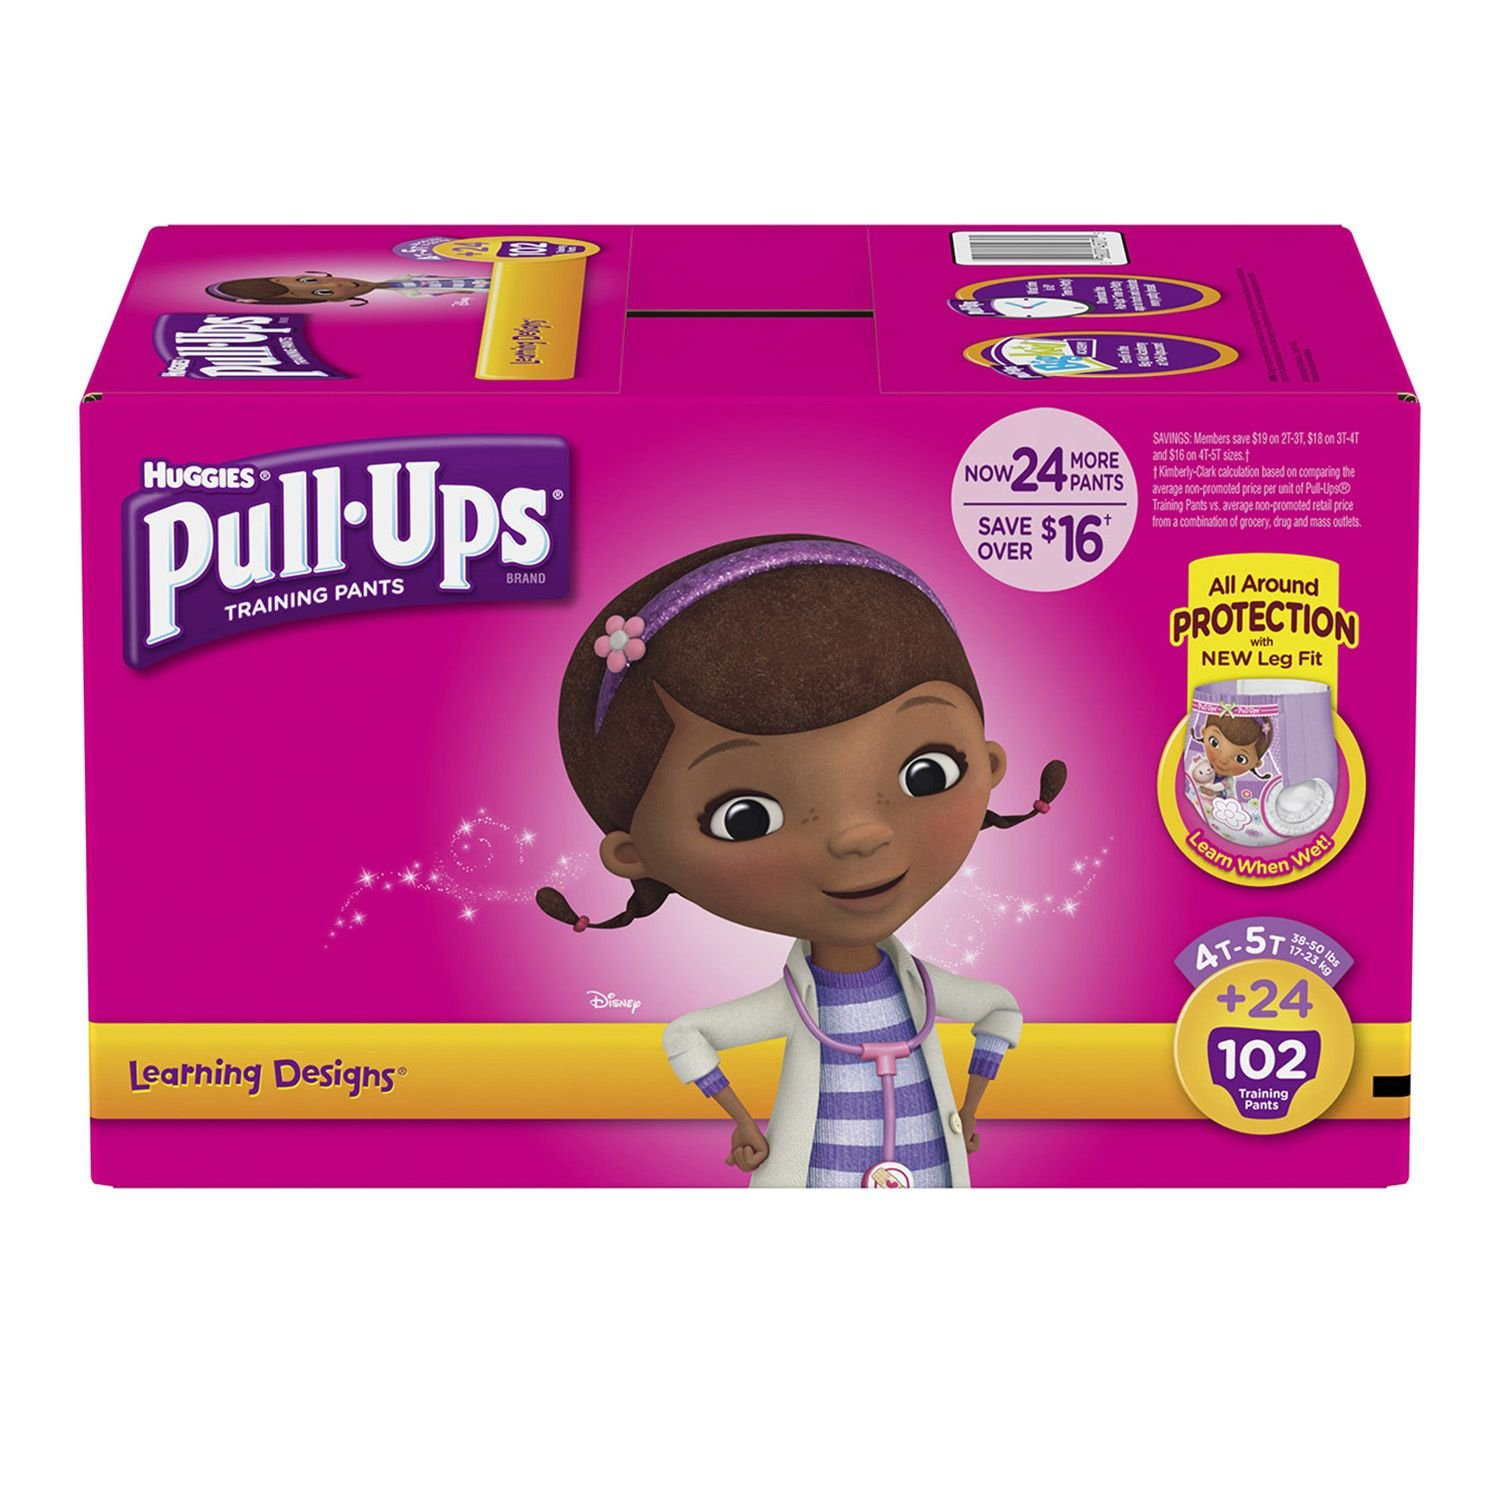 Huggies Pull-ups Training Pants for Girls (Size XL, 4T - 5T, 102 ct.)